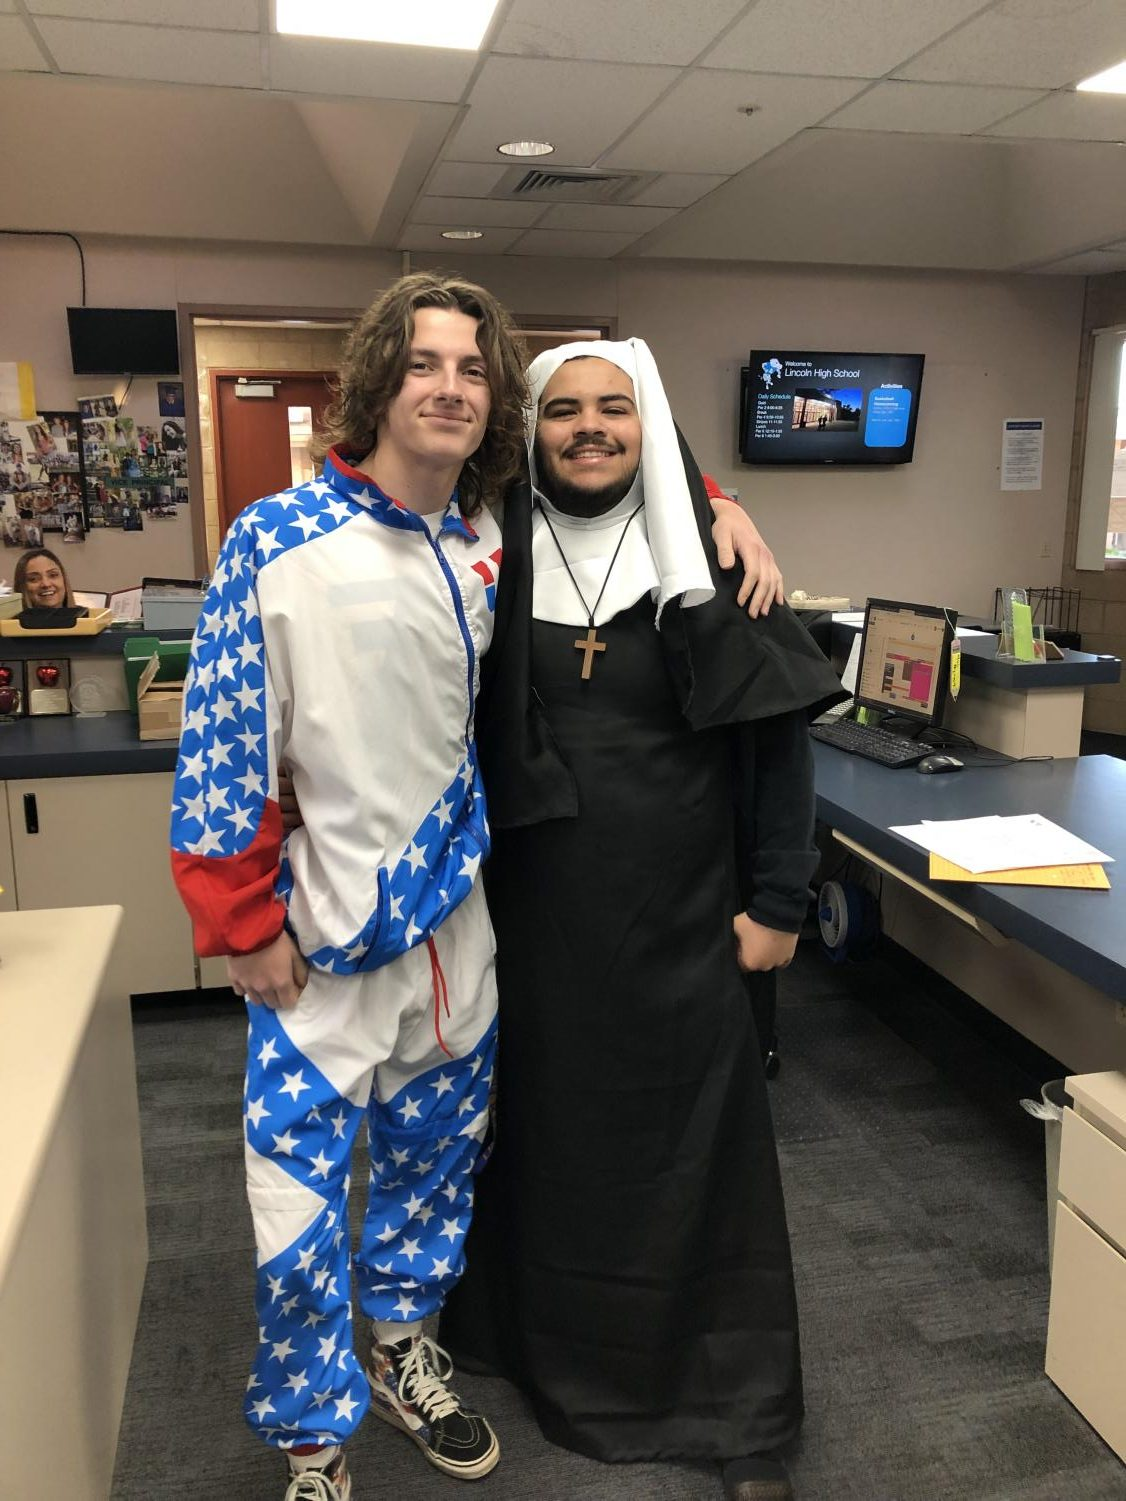 ASB President Michael Carpineta & Nate Labrado dressed up during Homecoming week.